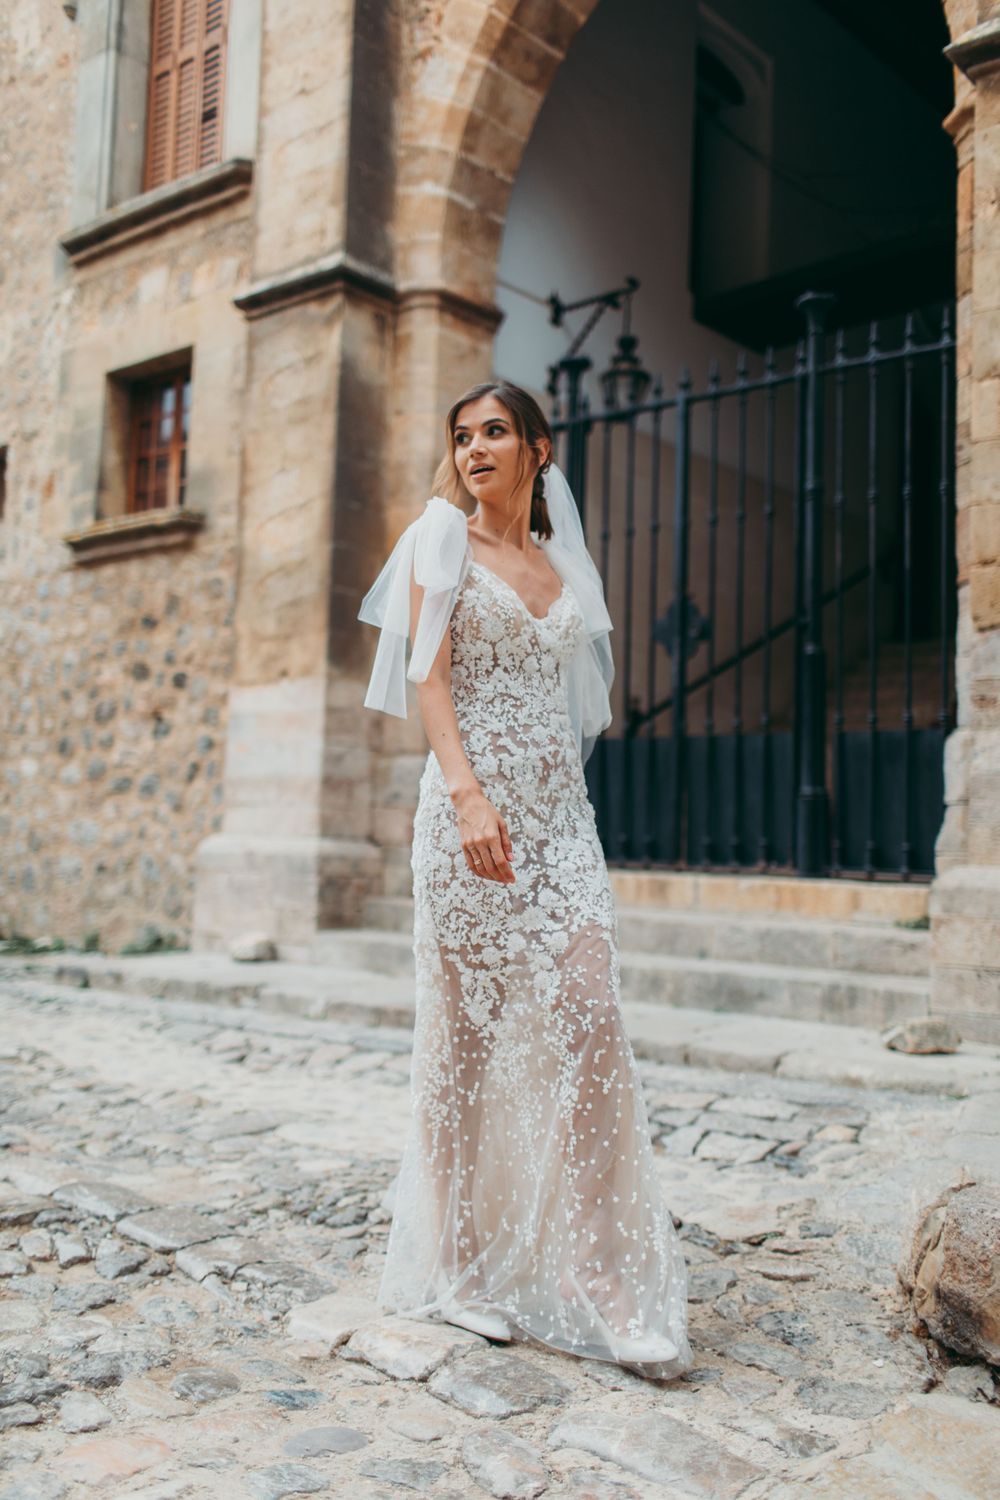 Gorgeous bride from Ukraine getting married in Mallorca, Valldemossa, wearing a lace dress